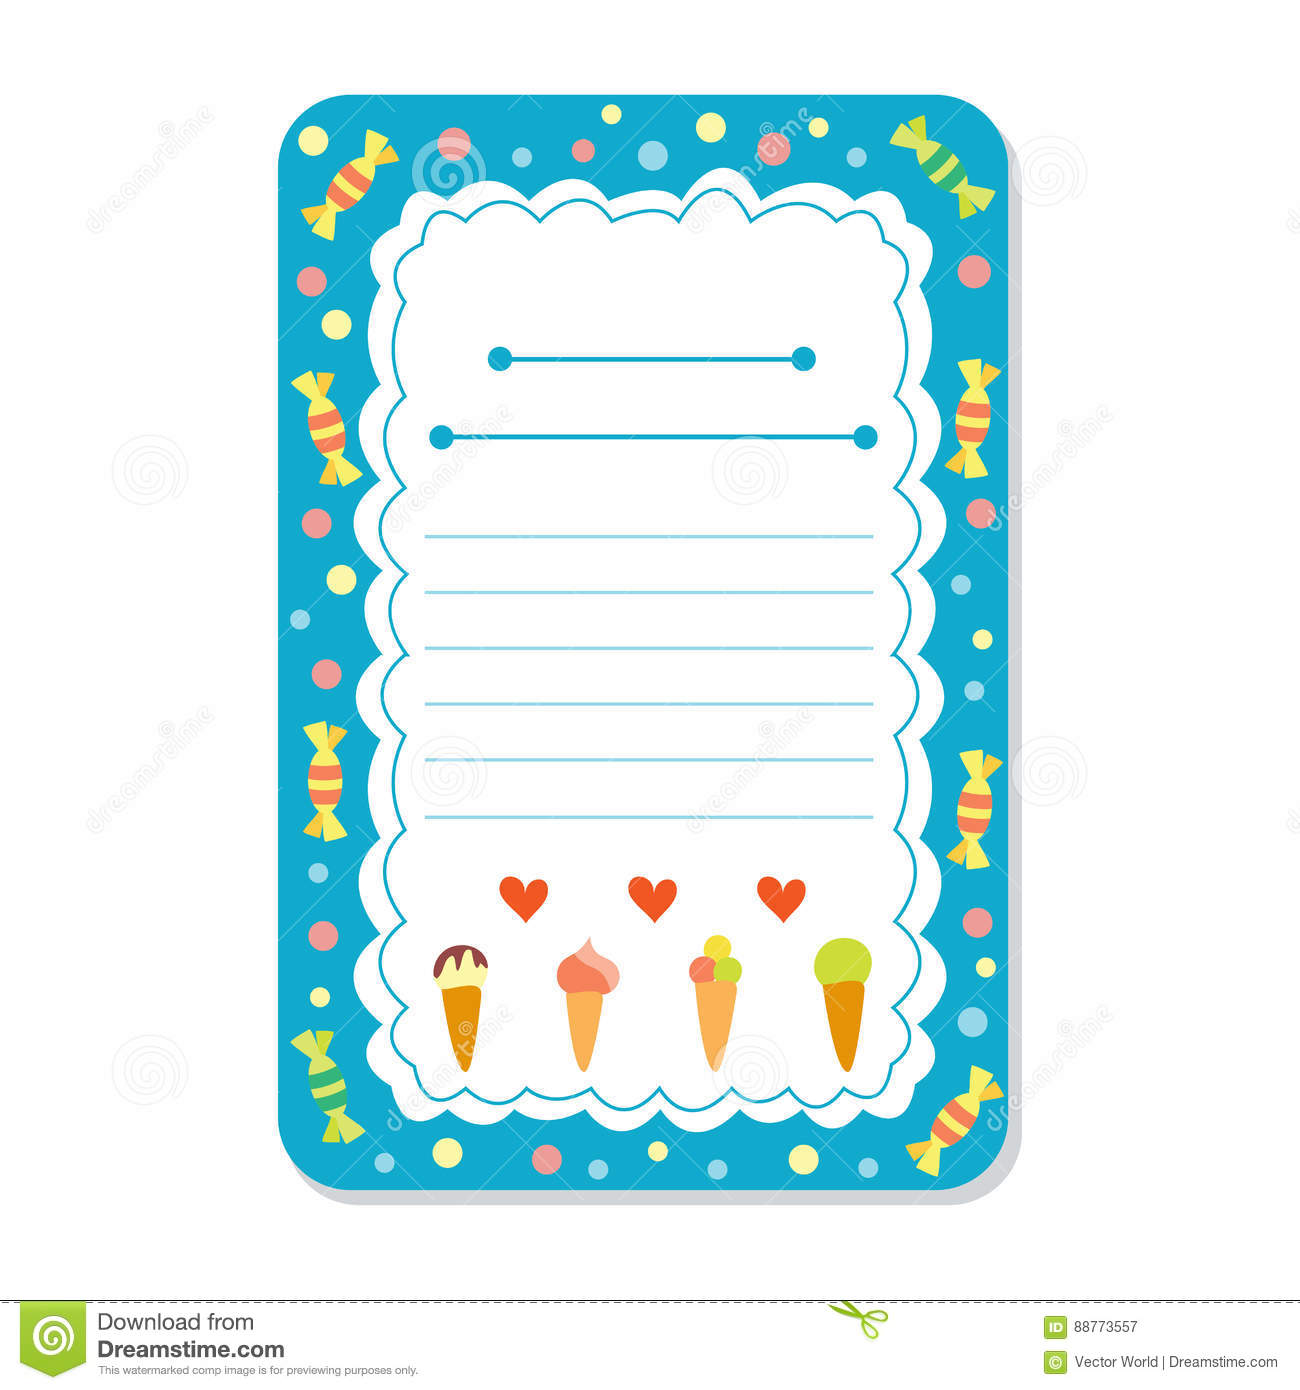 Cute Hand Drawn Doodle Birthday Party Baby Shower Card Brochure